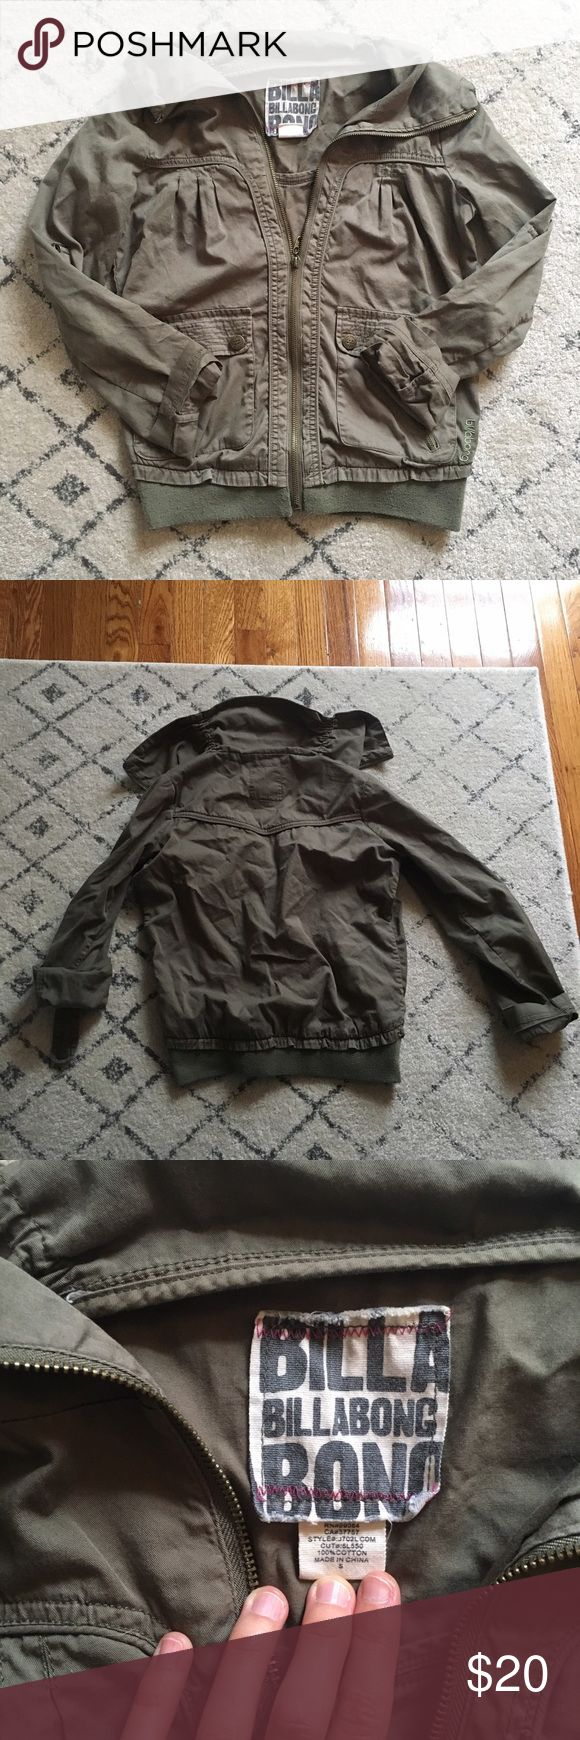 billabong cargo bomber zip up jacket Cargo/bomber style jacket by Billabong. I say bomber because there is a stretchy waistband at the bottom hem, but it also covers the classic army cargo jacket look too! Good used condition with minor pilling at the waistband from normal wear. Billabong Jackets & Coats Utility Jackets